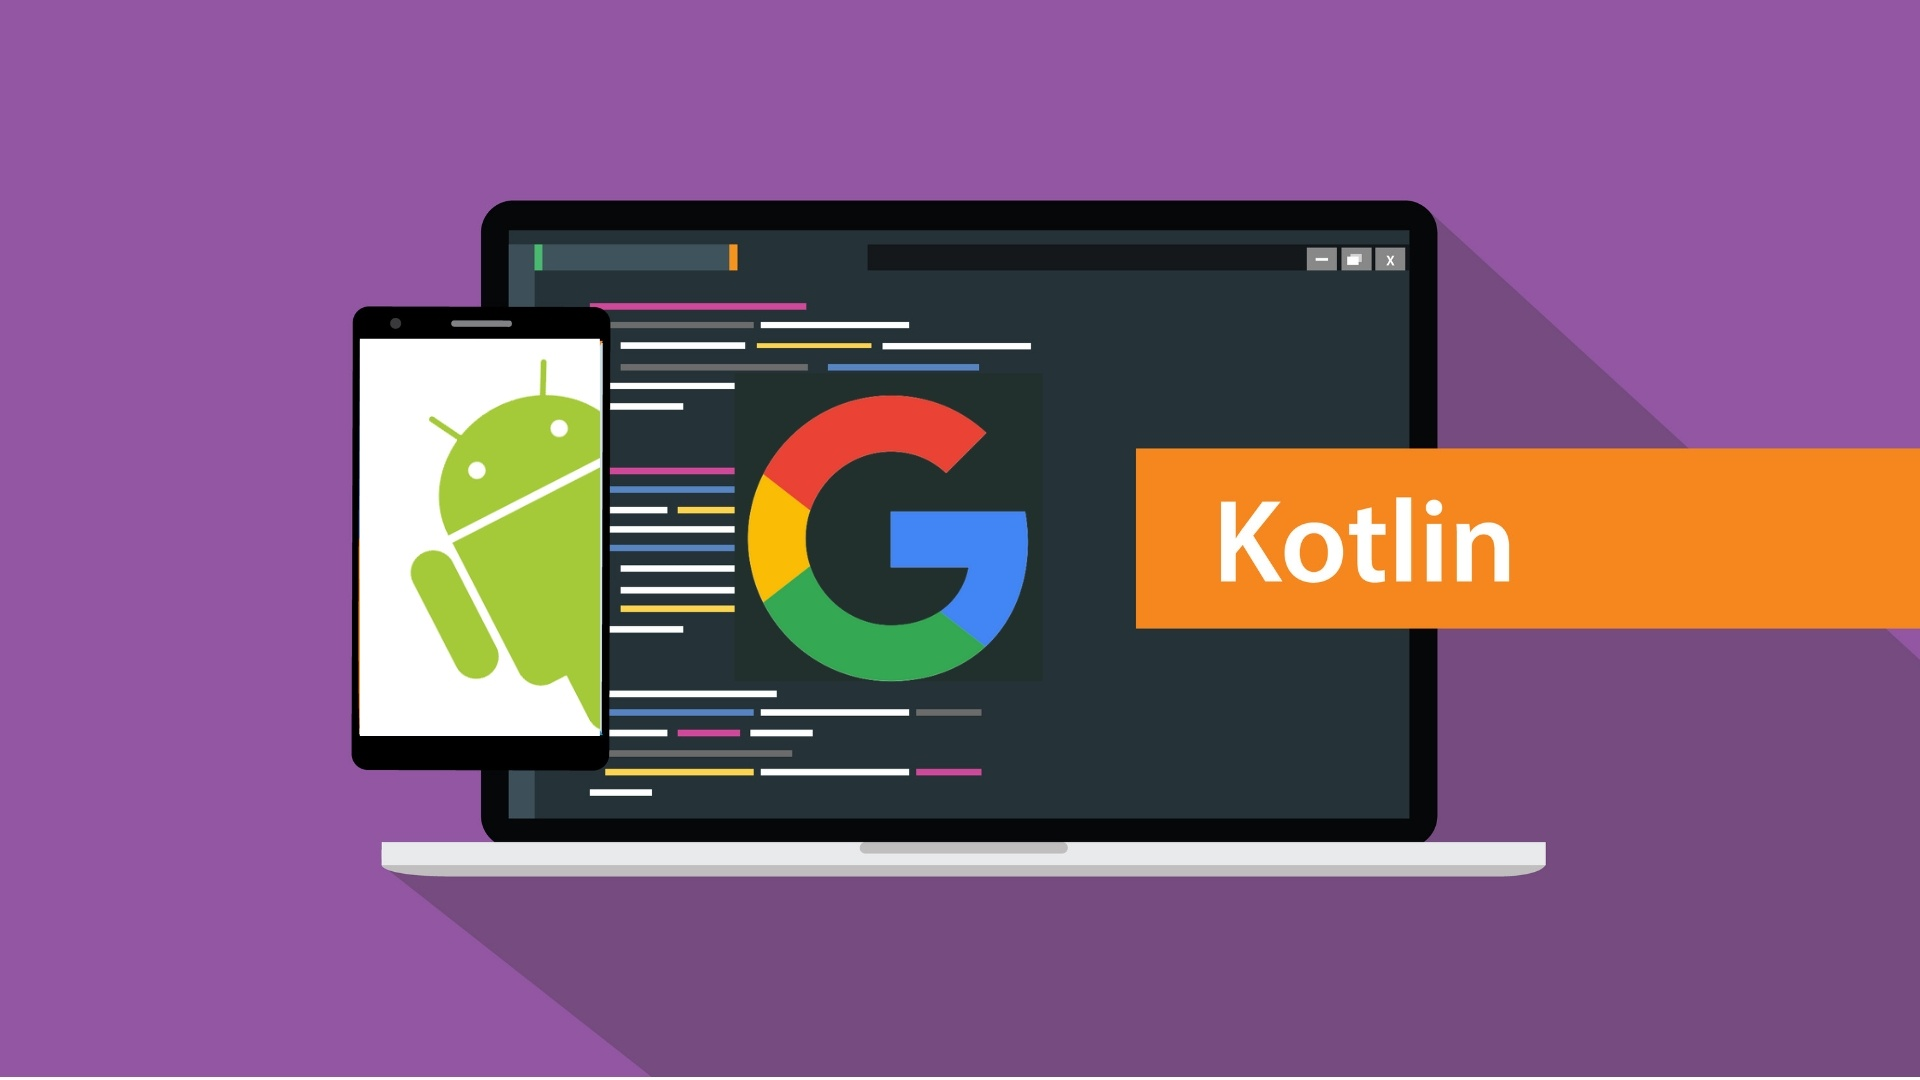 Should I learn Java or Kotlin for android programming?